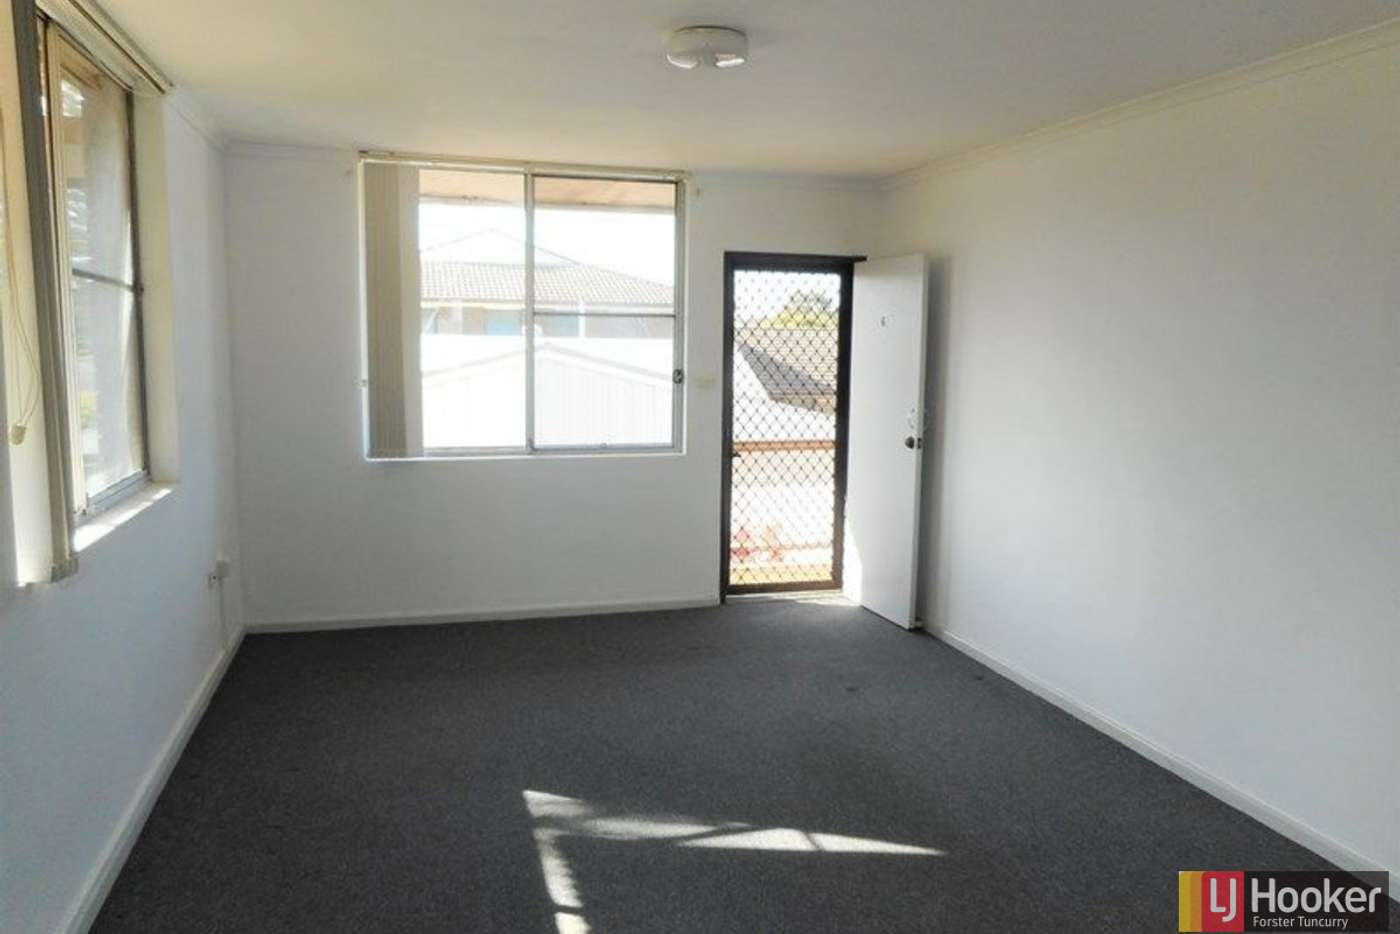 Seventh view of Homely blockOfUnits listing, 49 Wharf Street, Tuncurry NSW 2428